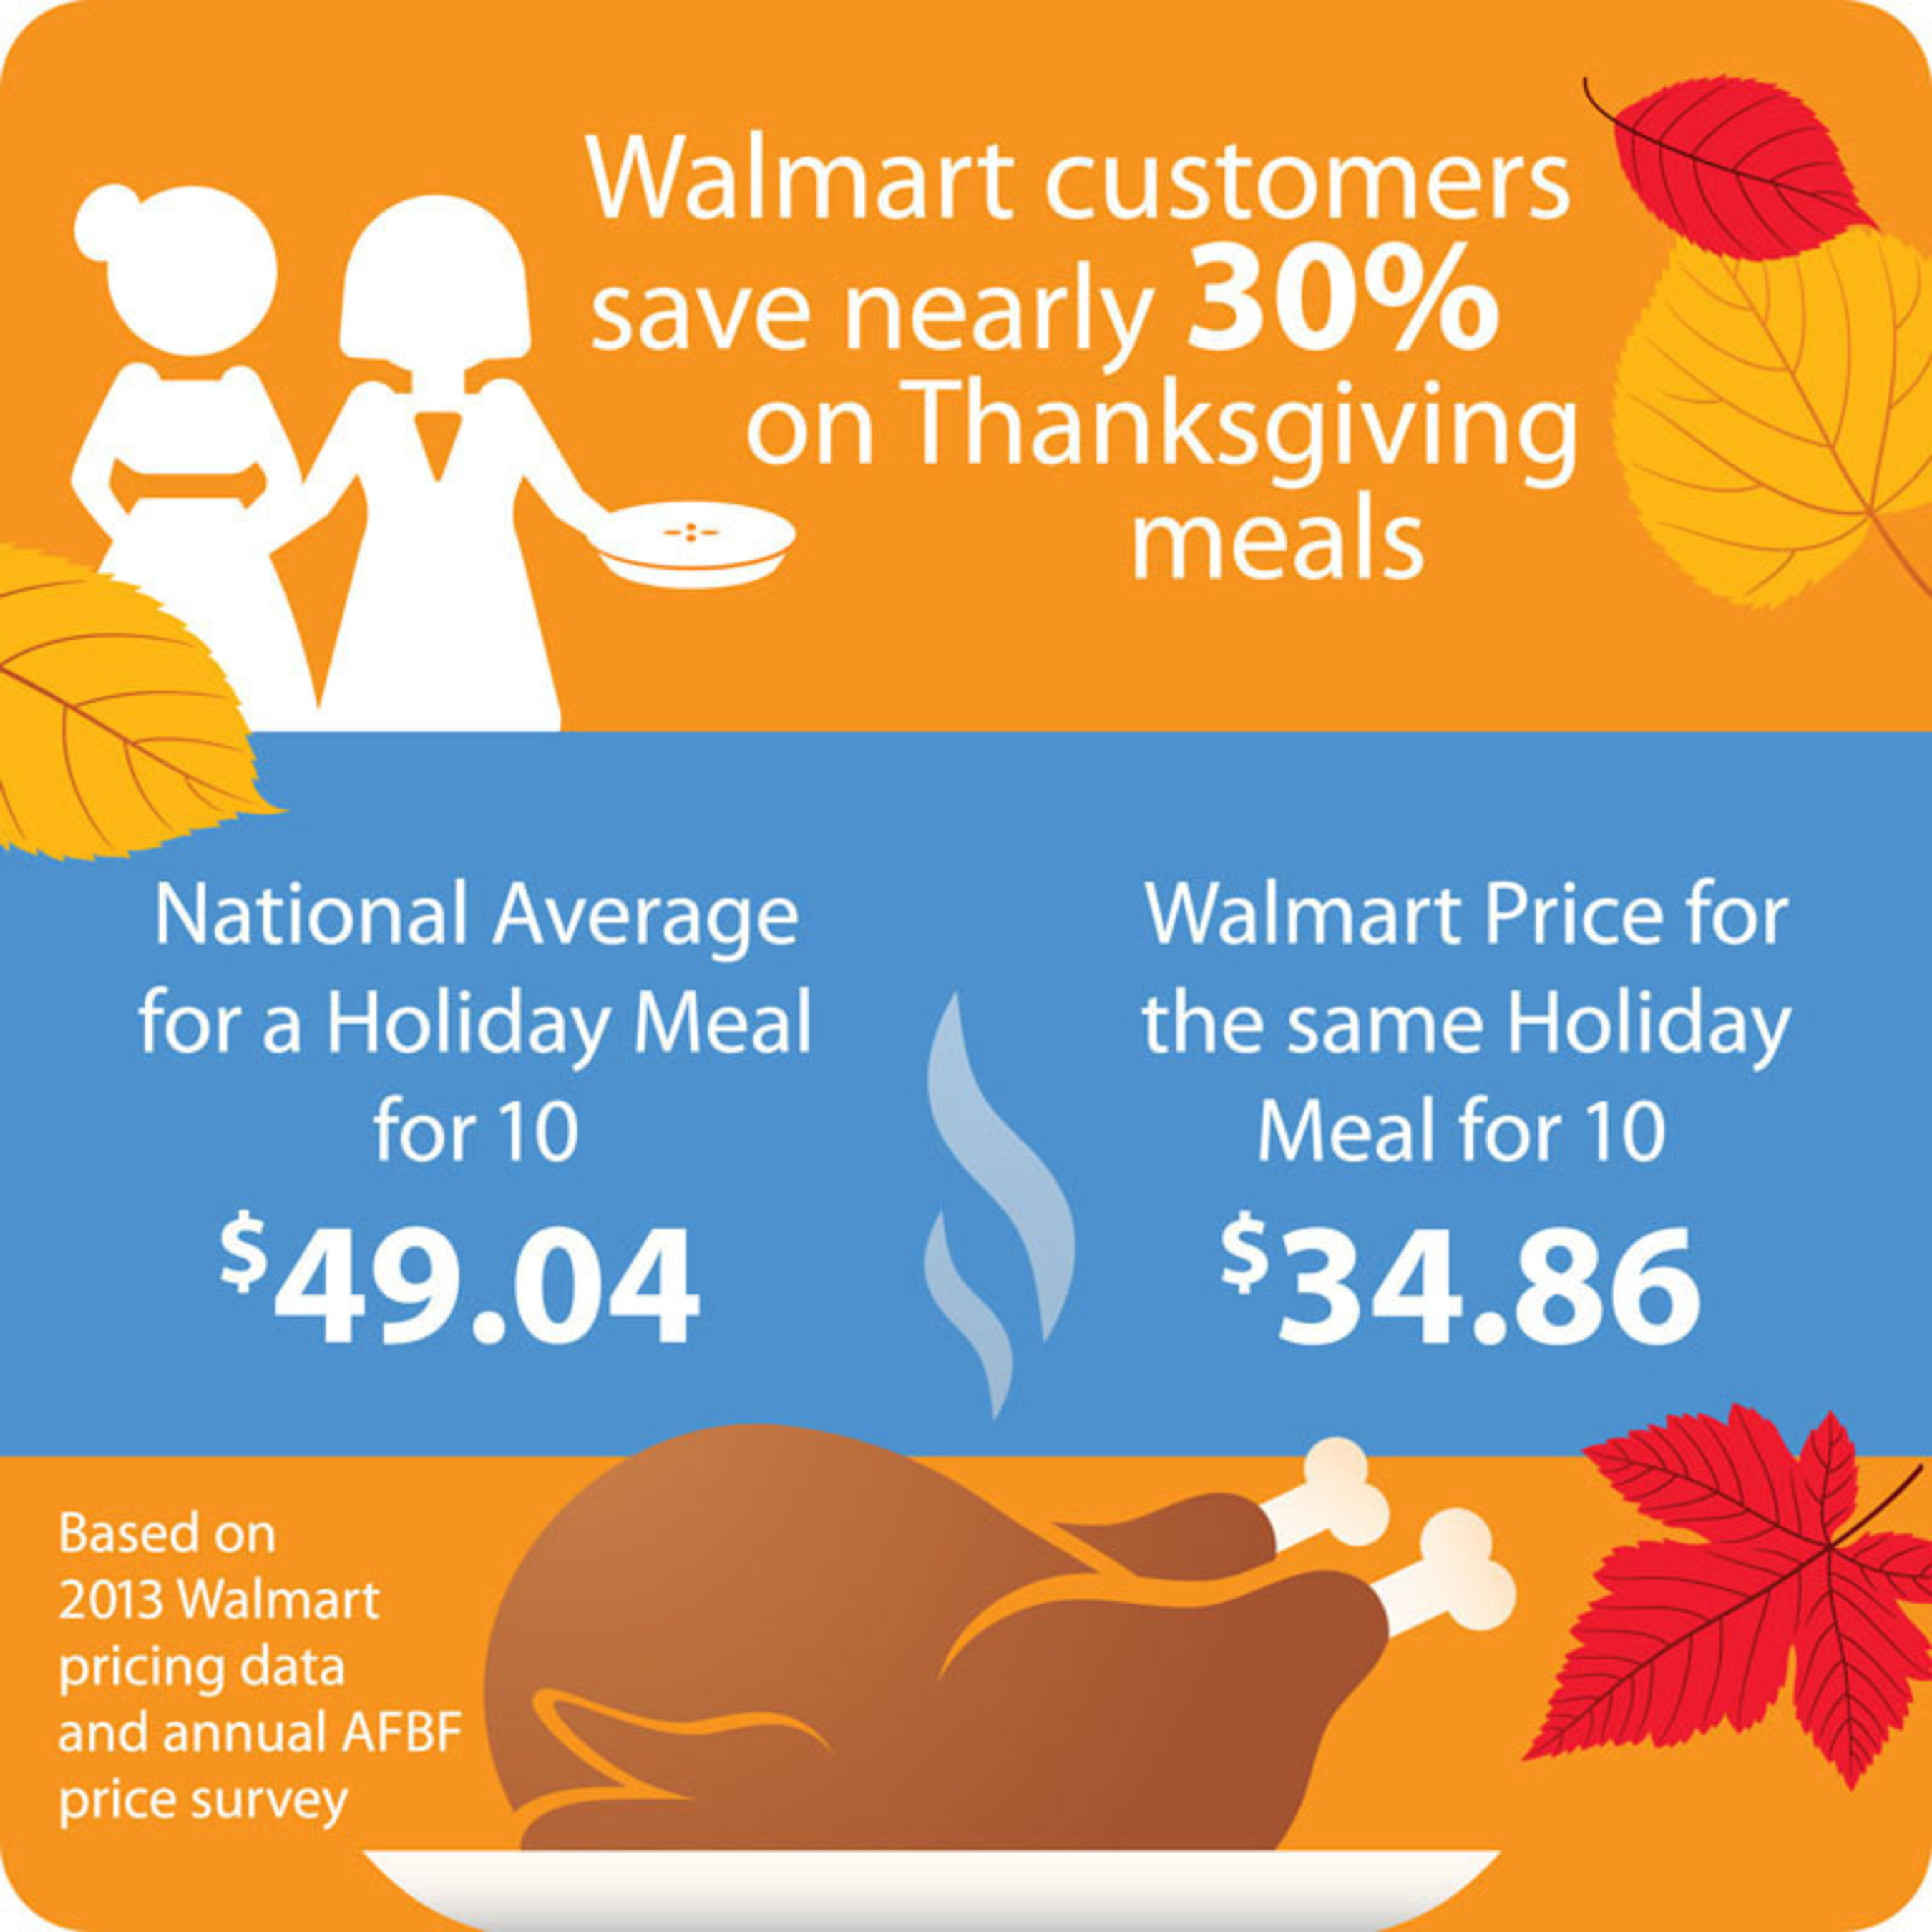 Walmart Shoppers Save Nearly 30% on Thanksgiving Meal Compared to National Average. (PRNewsFoto/Walmart) (PRNewsFoto/WALMART)